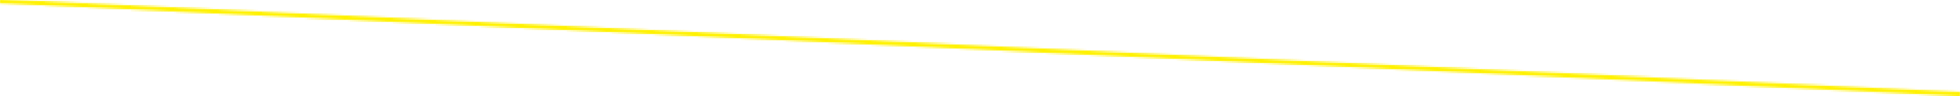 Angled_Line-Yellow down.png